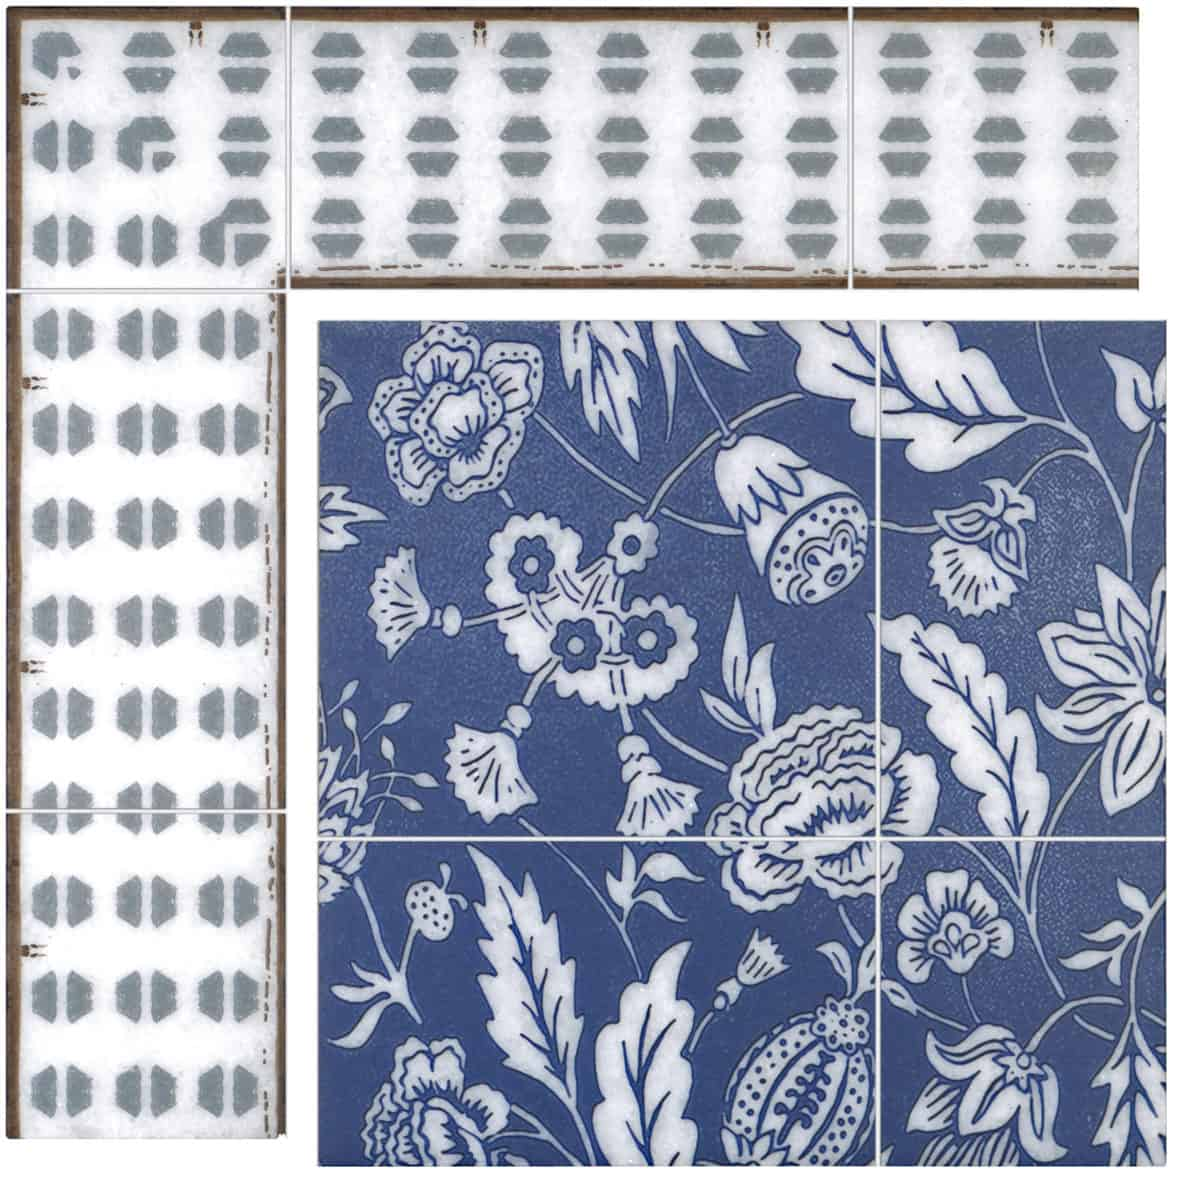 Farmhouse Mural in Navy on Arctic White color swatch